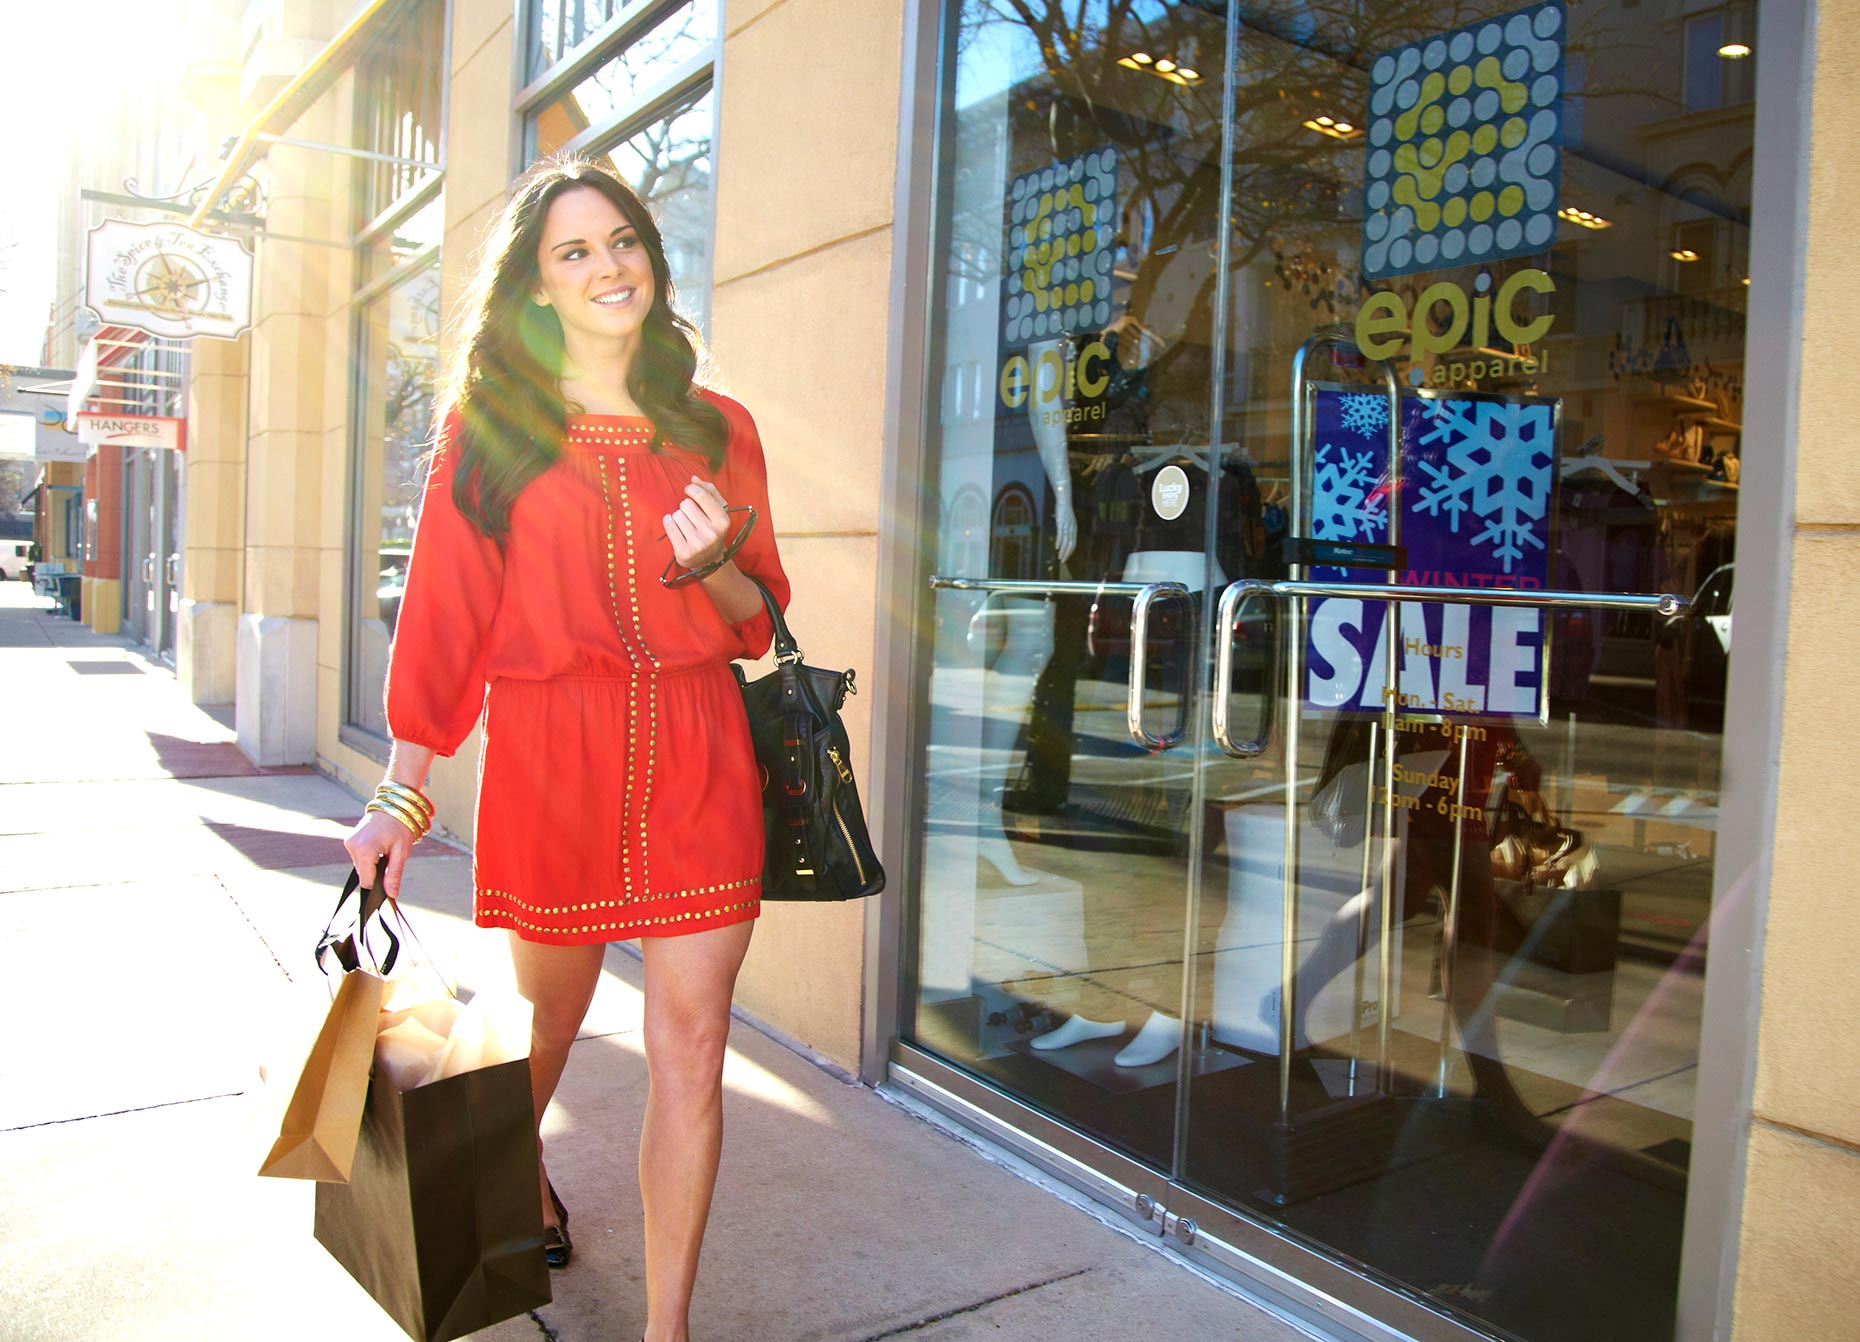 Samantha_shopping_outside_197